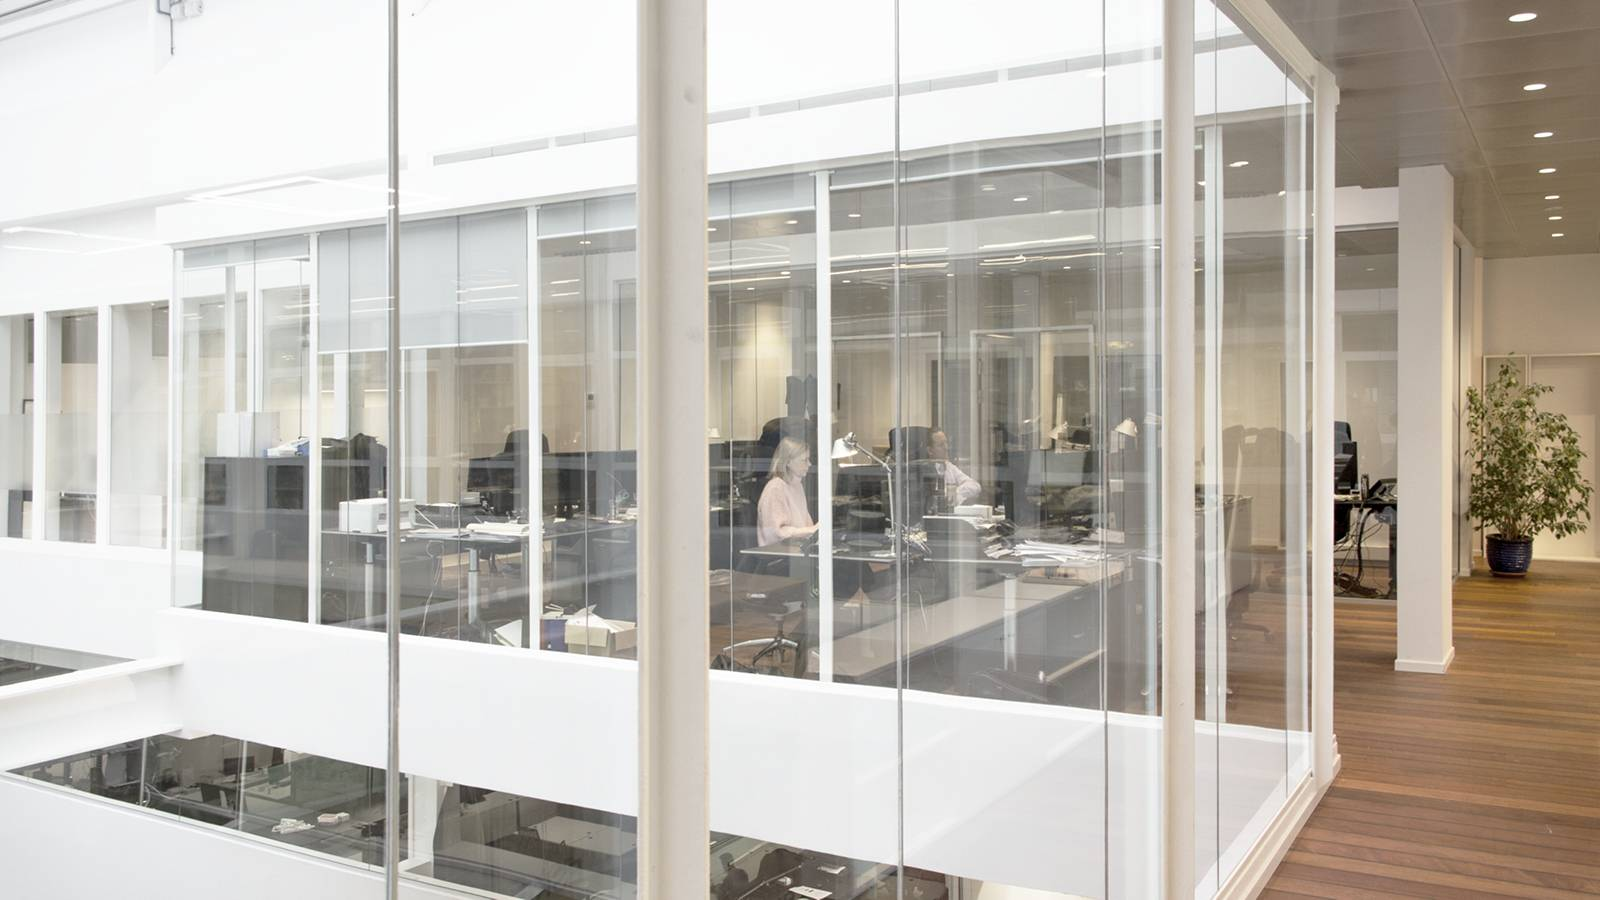 OFFICE SPACE FACING ATRIUM - Frontline Offices - SPOL Architects